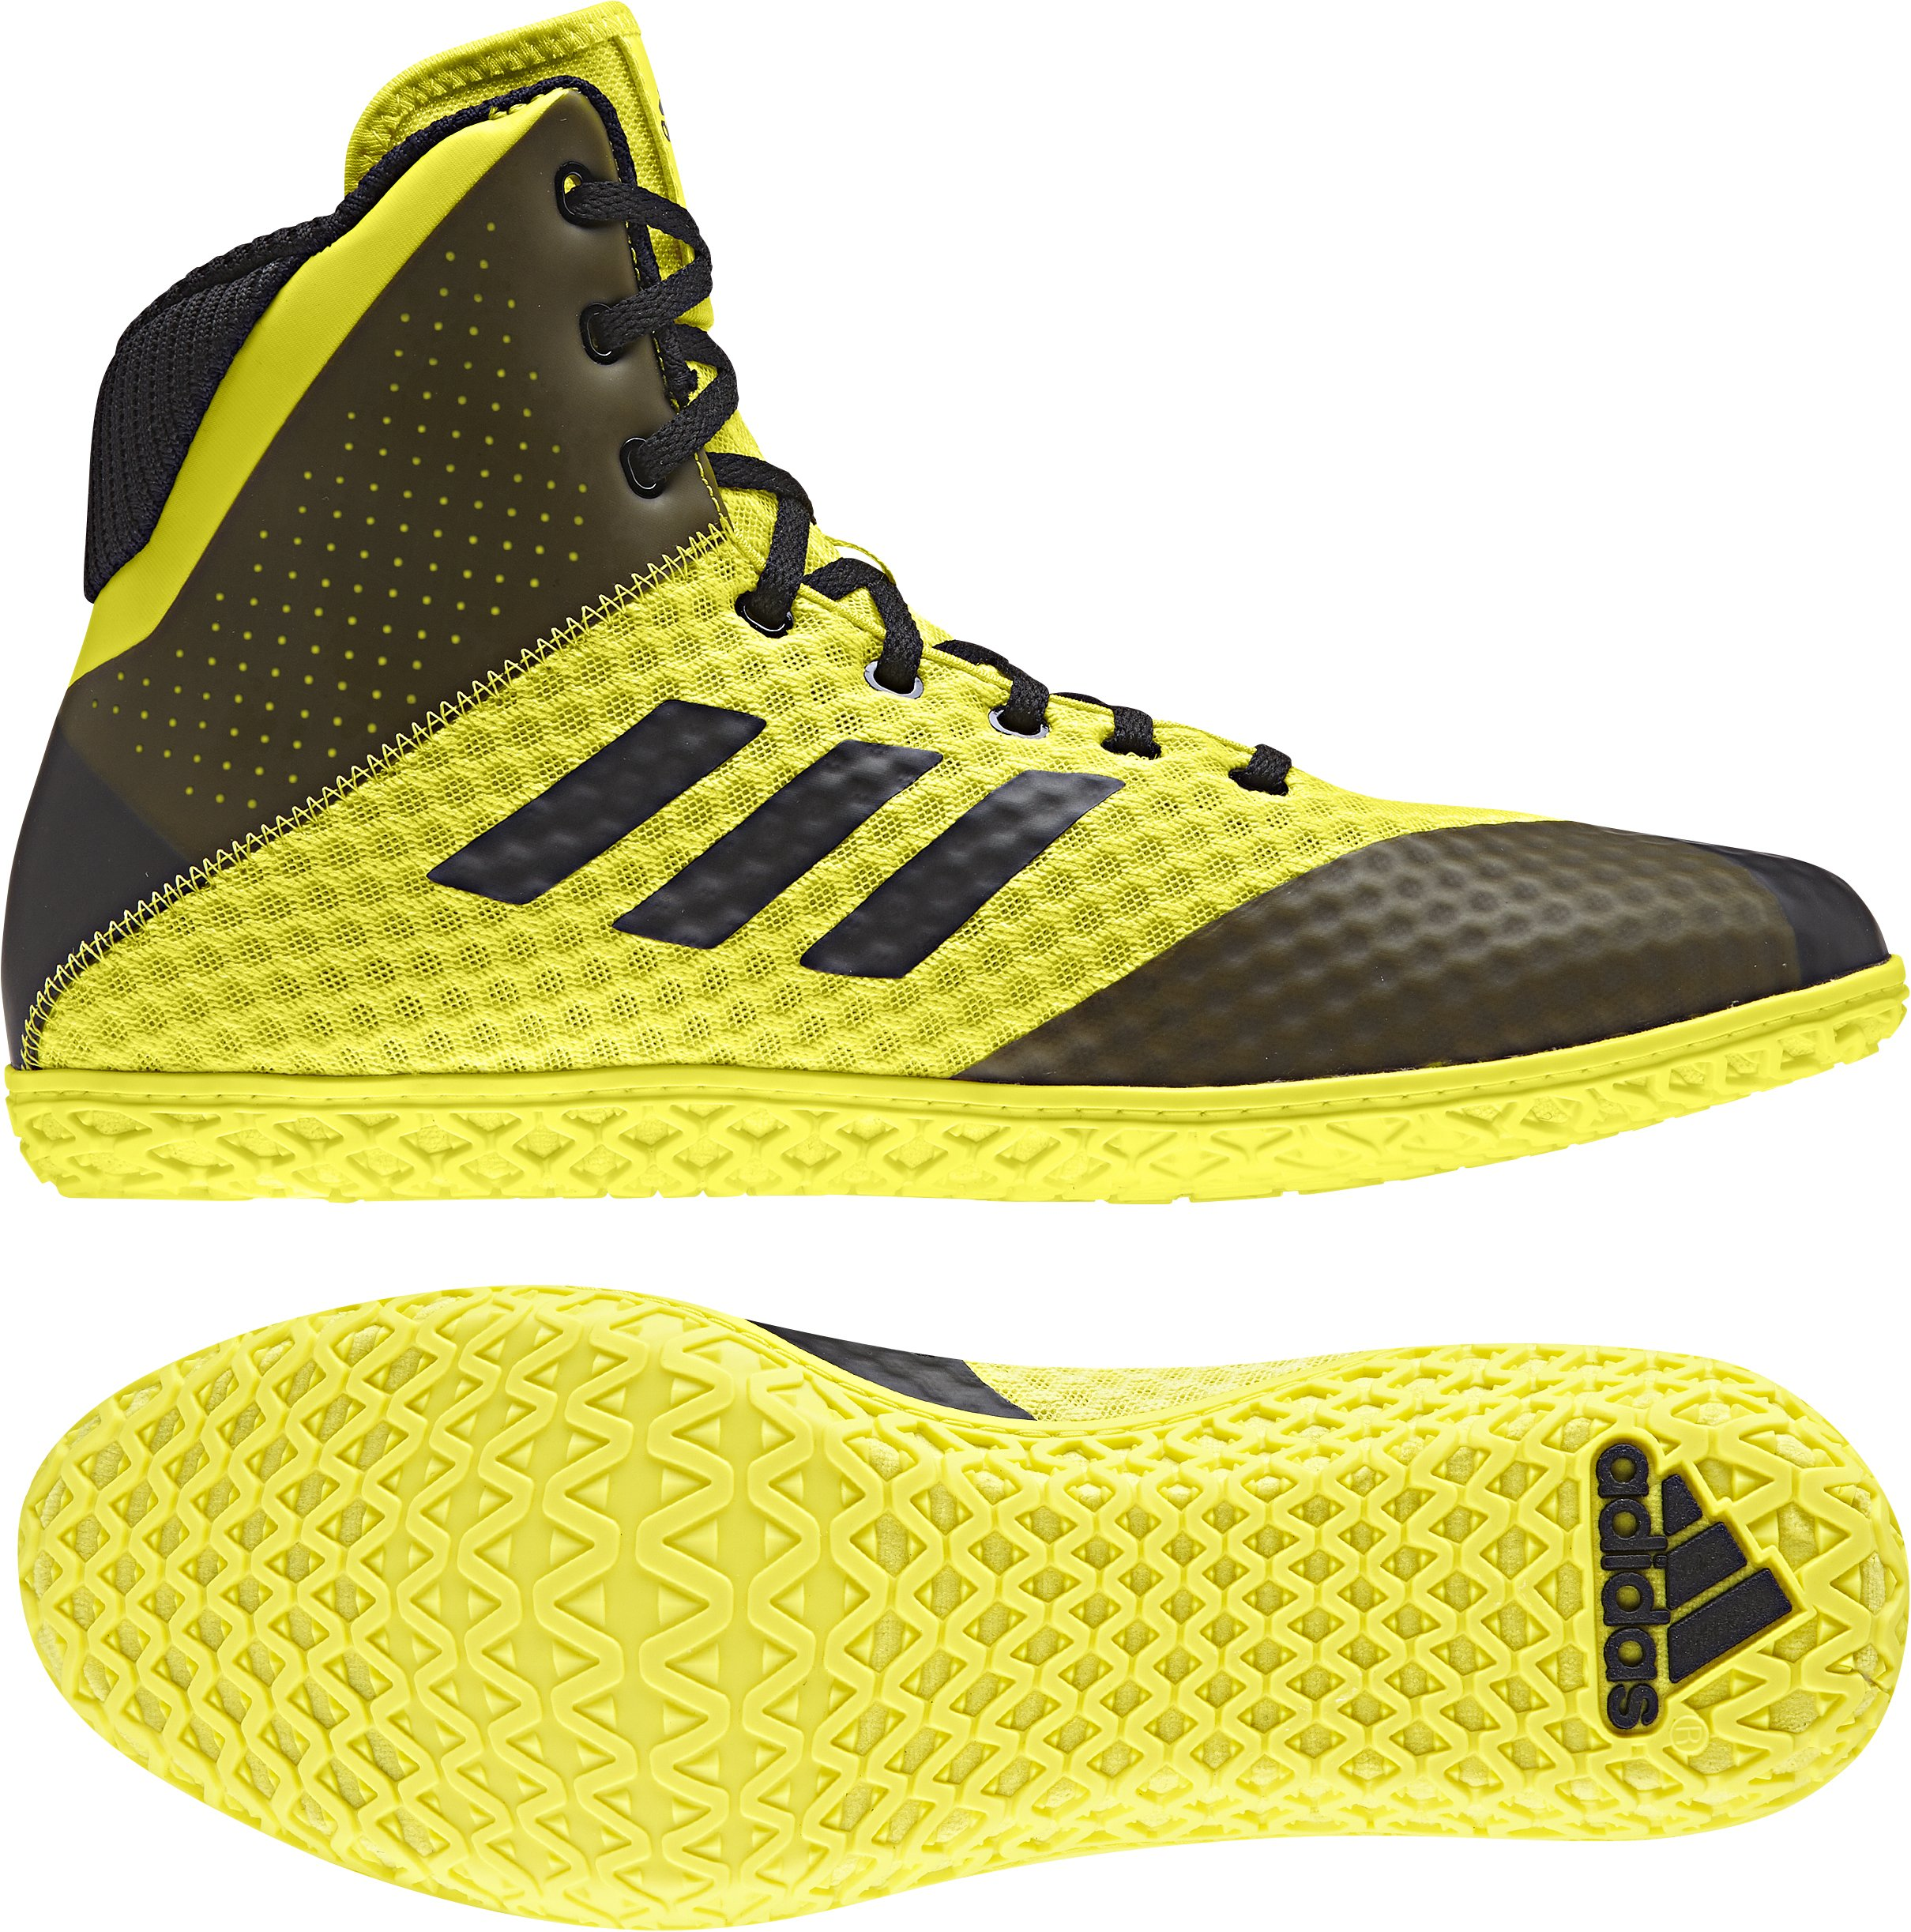 adidas Mat Wizard 4 Youth Wrestling Shoes, Yellow/Black, Size 2 by adidas